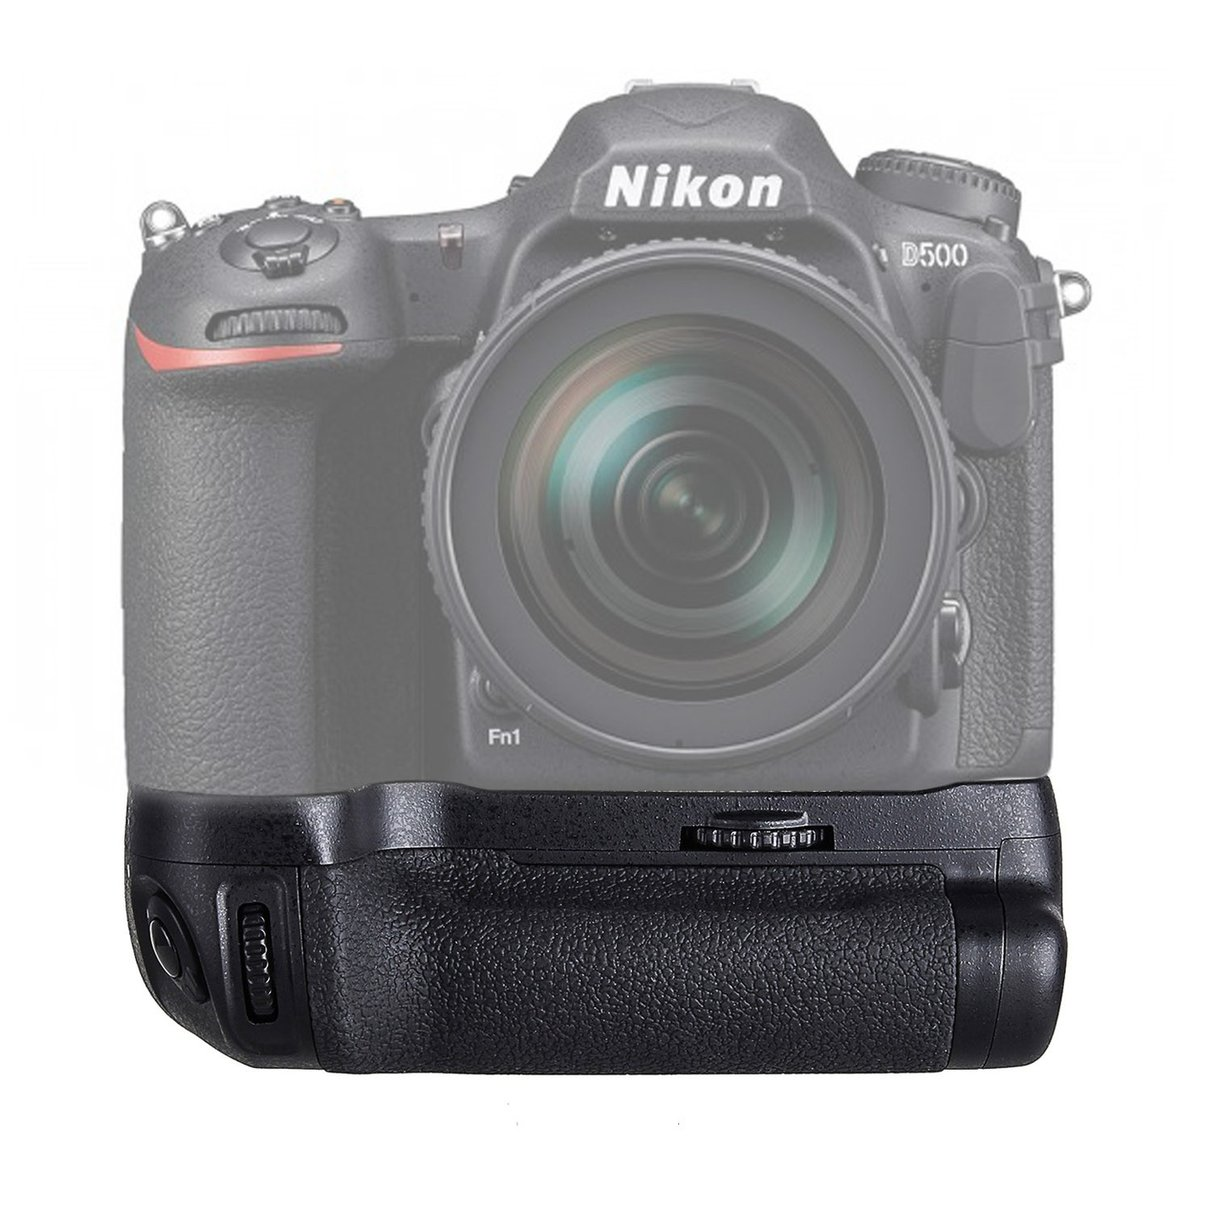 EACHSHOT MB-D17 Replacement Battery Grip for Nikon D500 Digital SLR Cameras works with EN-EL15 As the MK-D500 VS Pixel Vertax D1 кольцо из золота r 0256